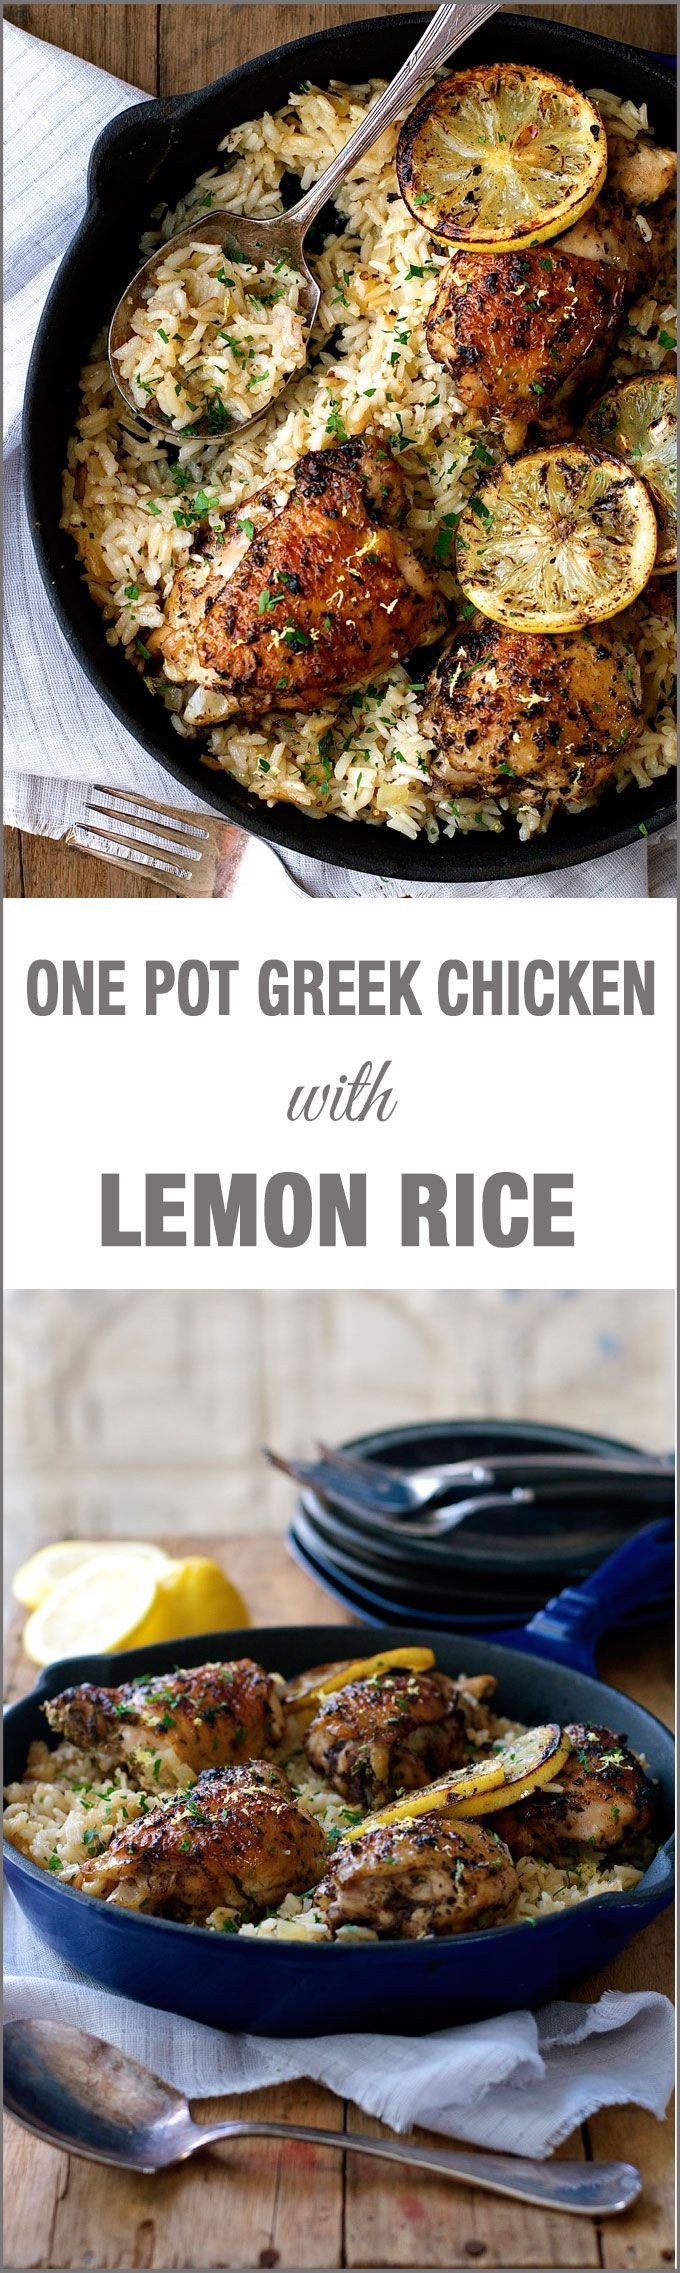 nike air max shoes One Pot Greek Chicken & Lemon Rice | Recipe | Greek Chicken, One Pot and Rice